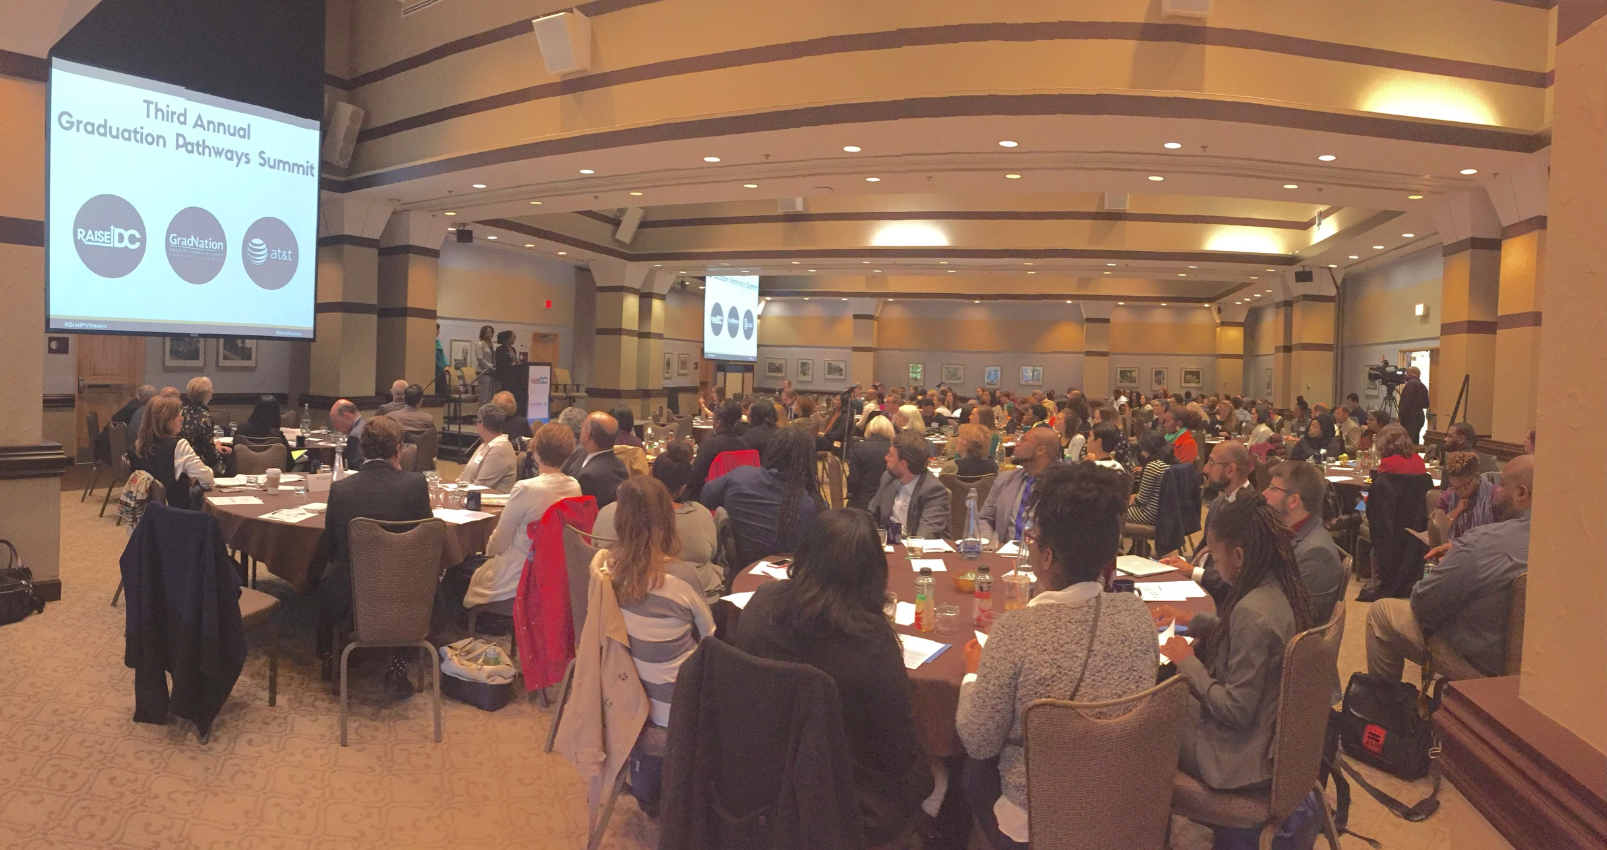 More than 180 participants joined us for the 2016 Graduation Pathways Summit!